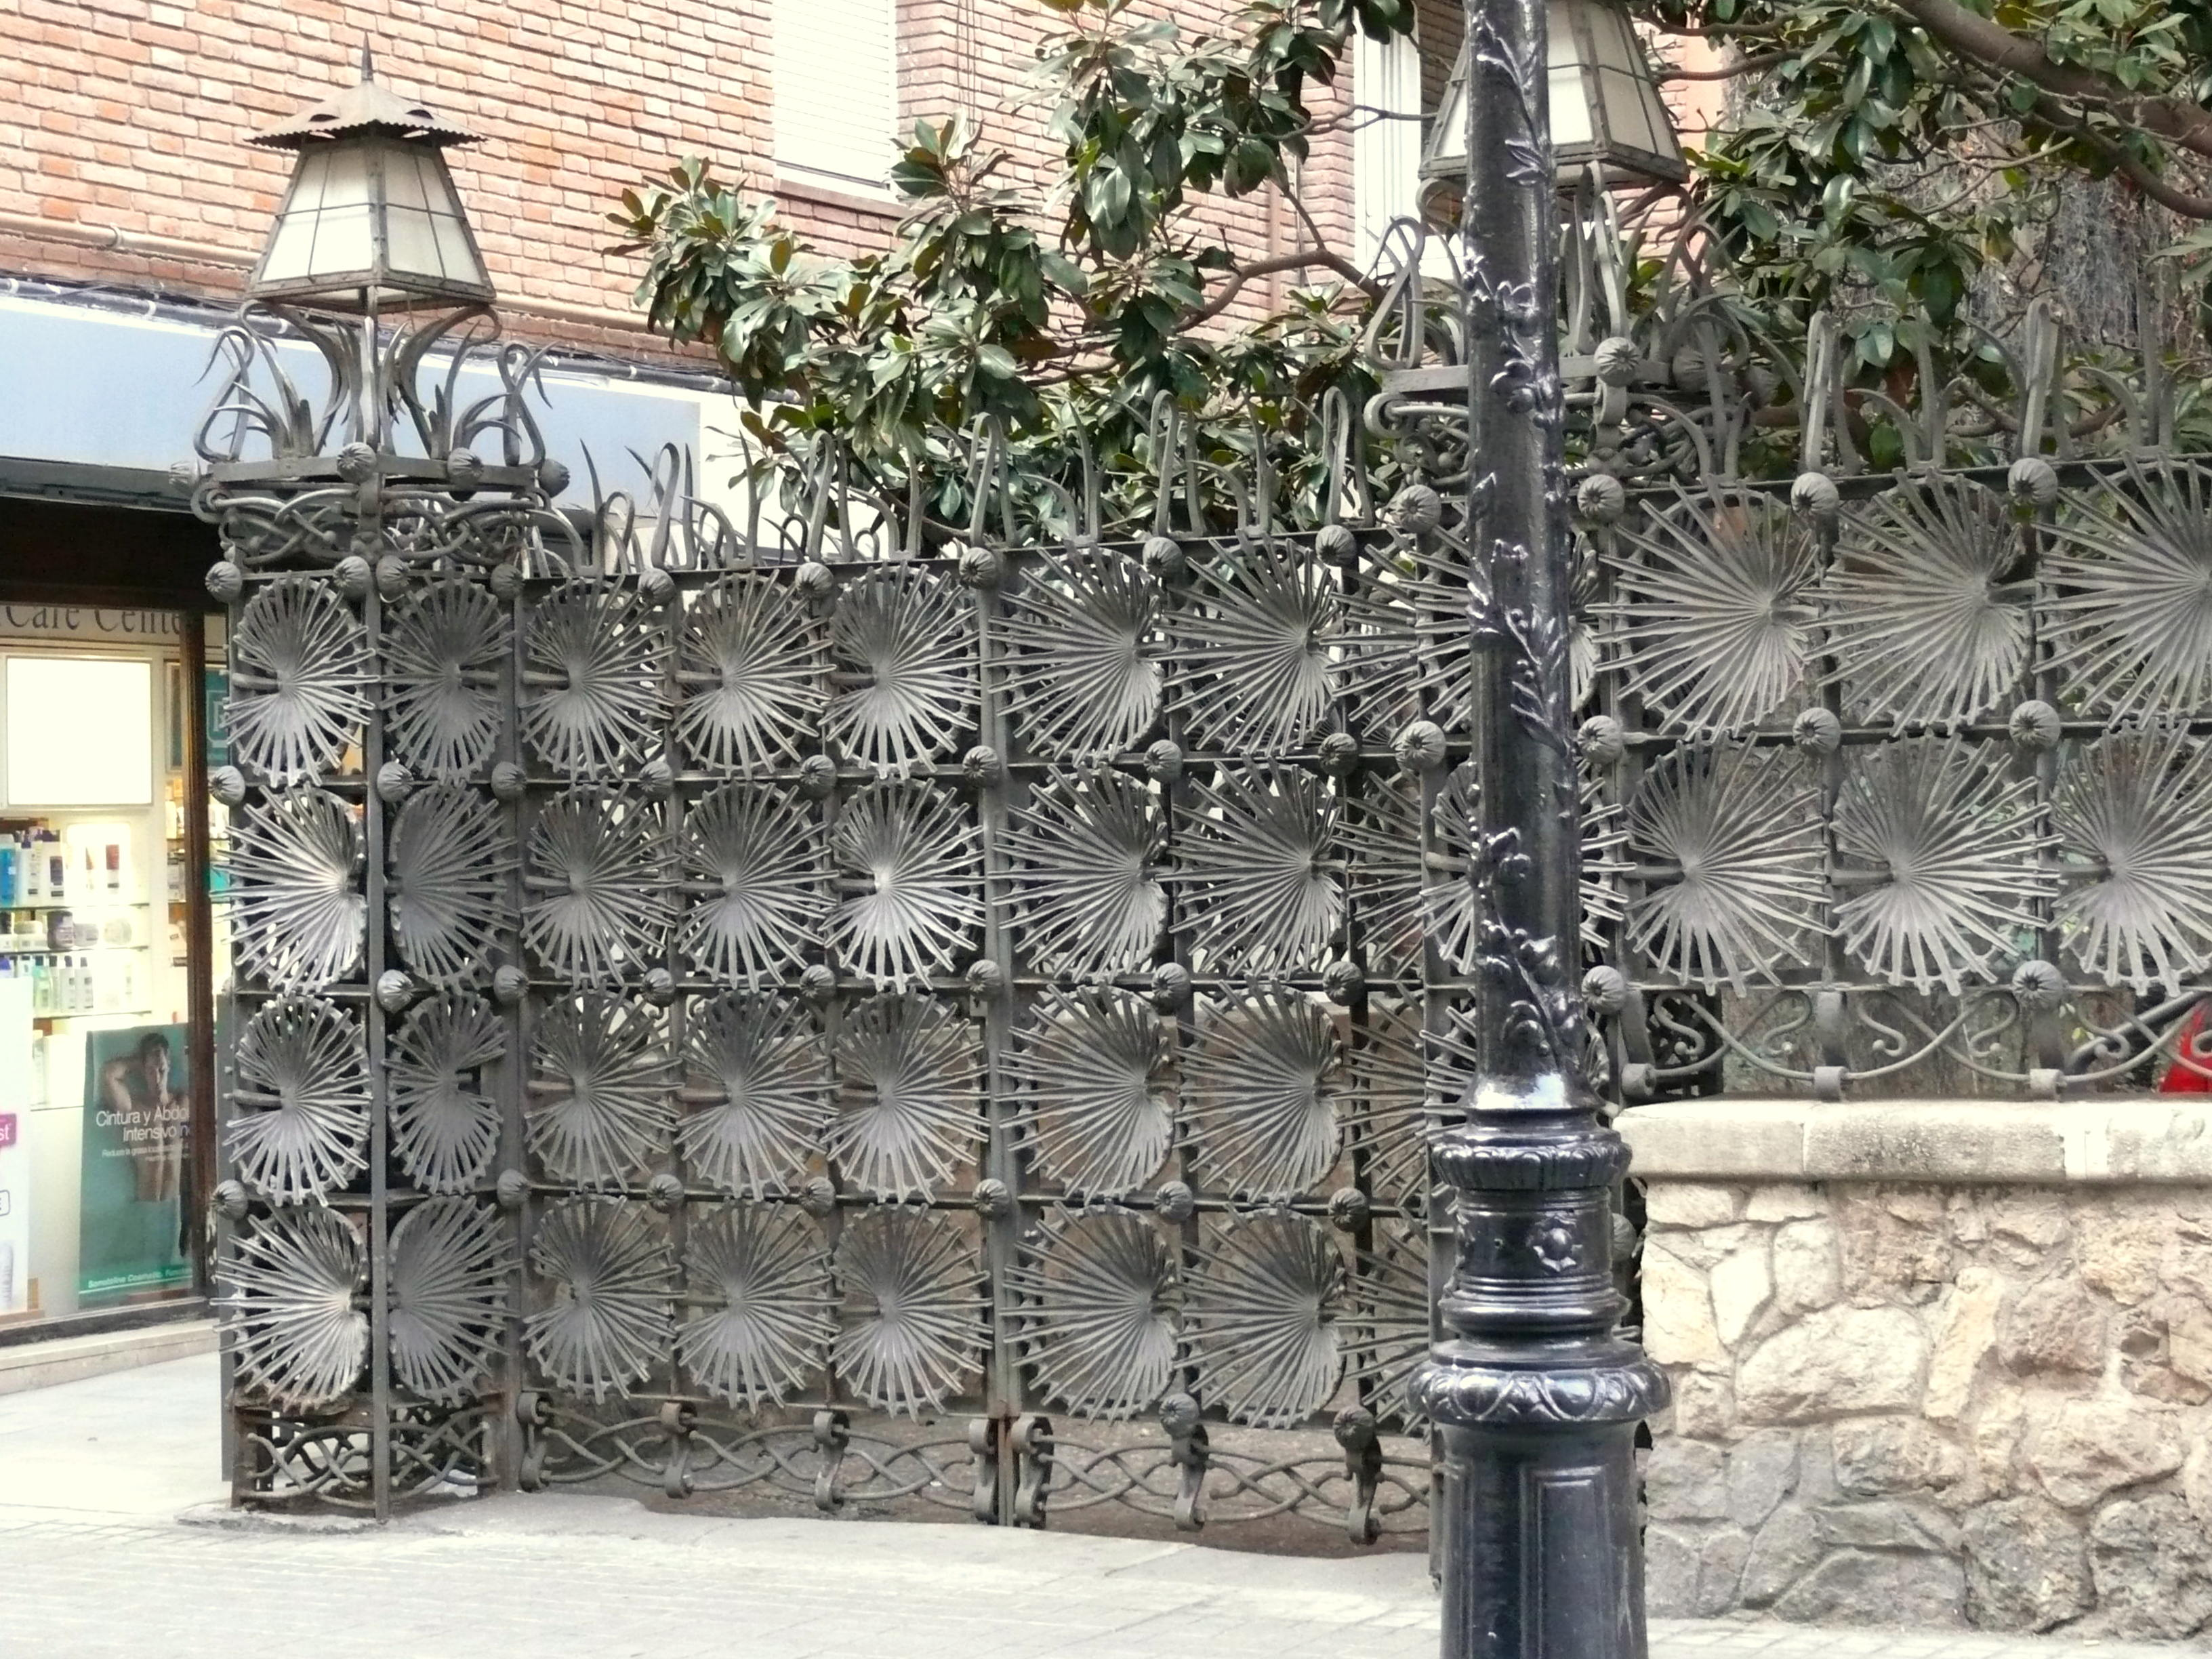 Wrought iron gate  in the Casa Vicens in Barcelona. The main motif of ornament are the palm trees.